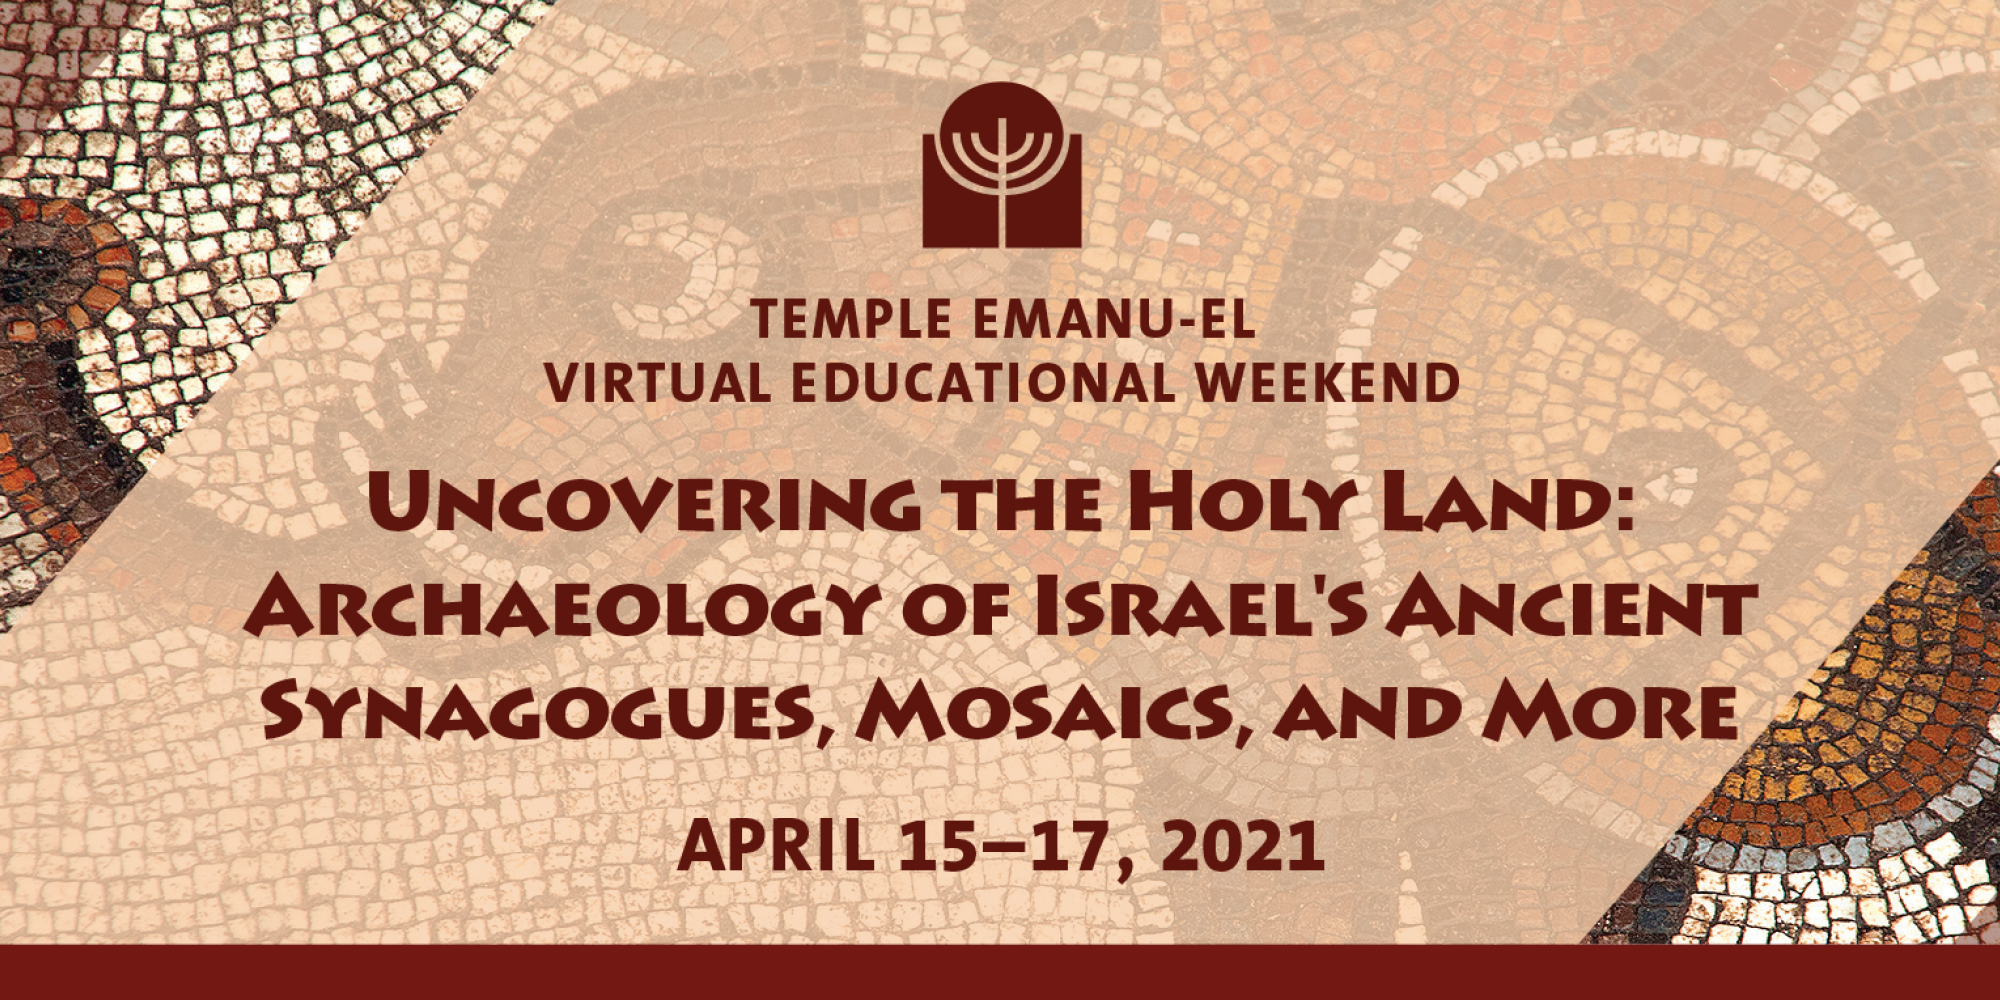 """<a href=""""https://www.teprov.org/form/Holyland""""                                     target="""""""">                                                                 <span class=""""slider_title"""">                                     Virtual Educational Weekend                                </span>                                                                 </a>                                                                                                                                                                                       <span class=""""slider_description"""">Join us for our Virtual Educational Weekend with Scholar-in-Residence, Jodi Magness. <a href=""""https://www.teprov.org/Holyland"""">Click here</a> for more information!</span>                                                                                     <a href=""""https://www.teprov.org/form/Holyland"""" class=""""slider_link""""                             target="""""""">                             Click here to register                            </a>"""